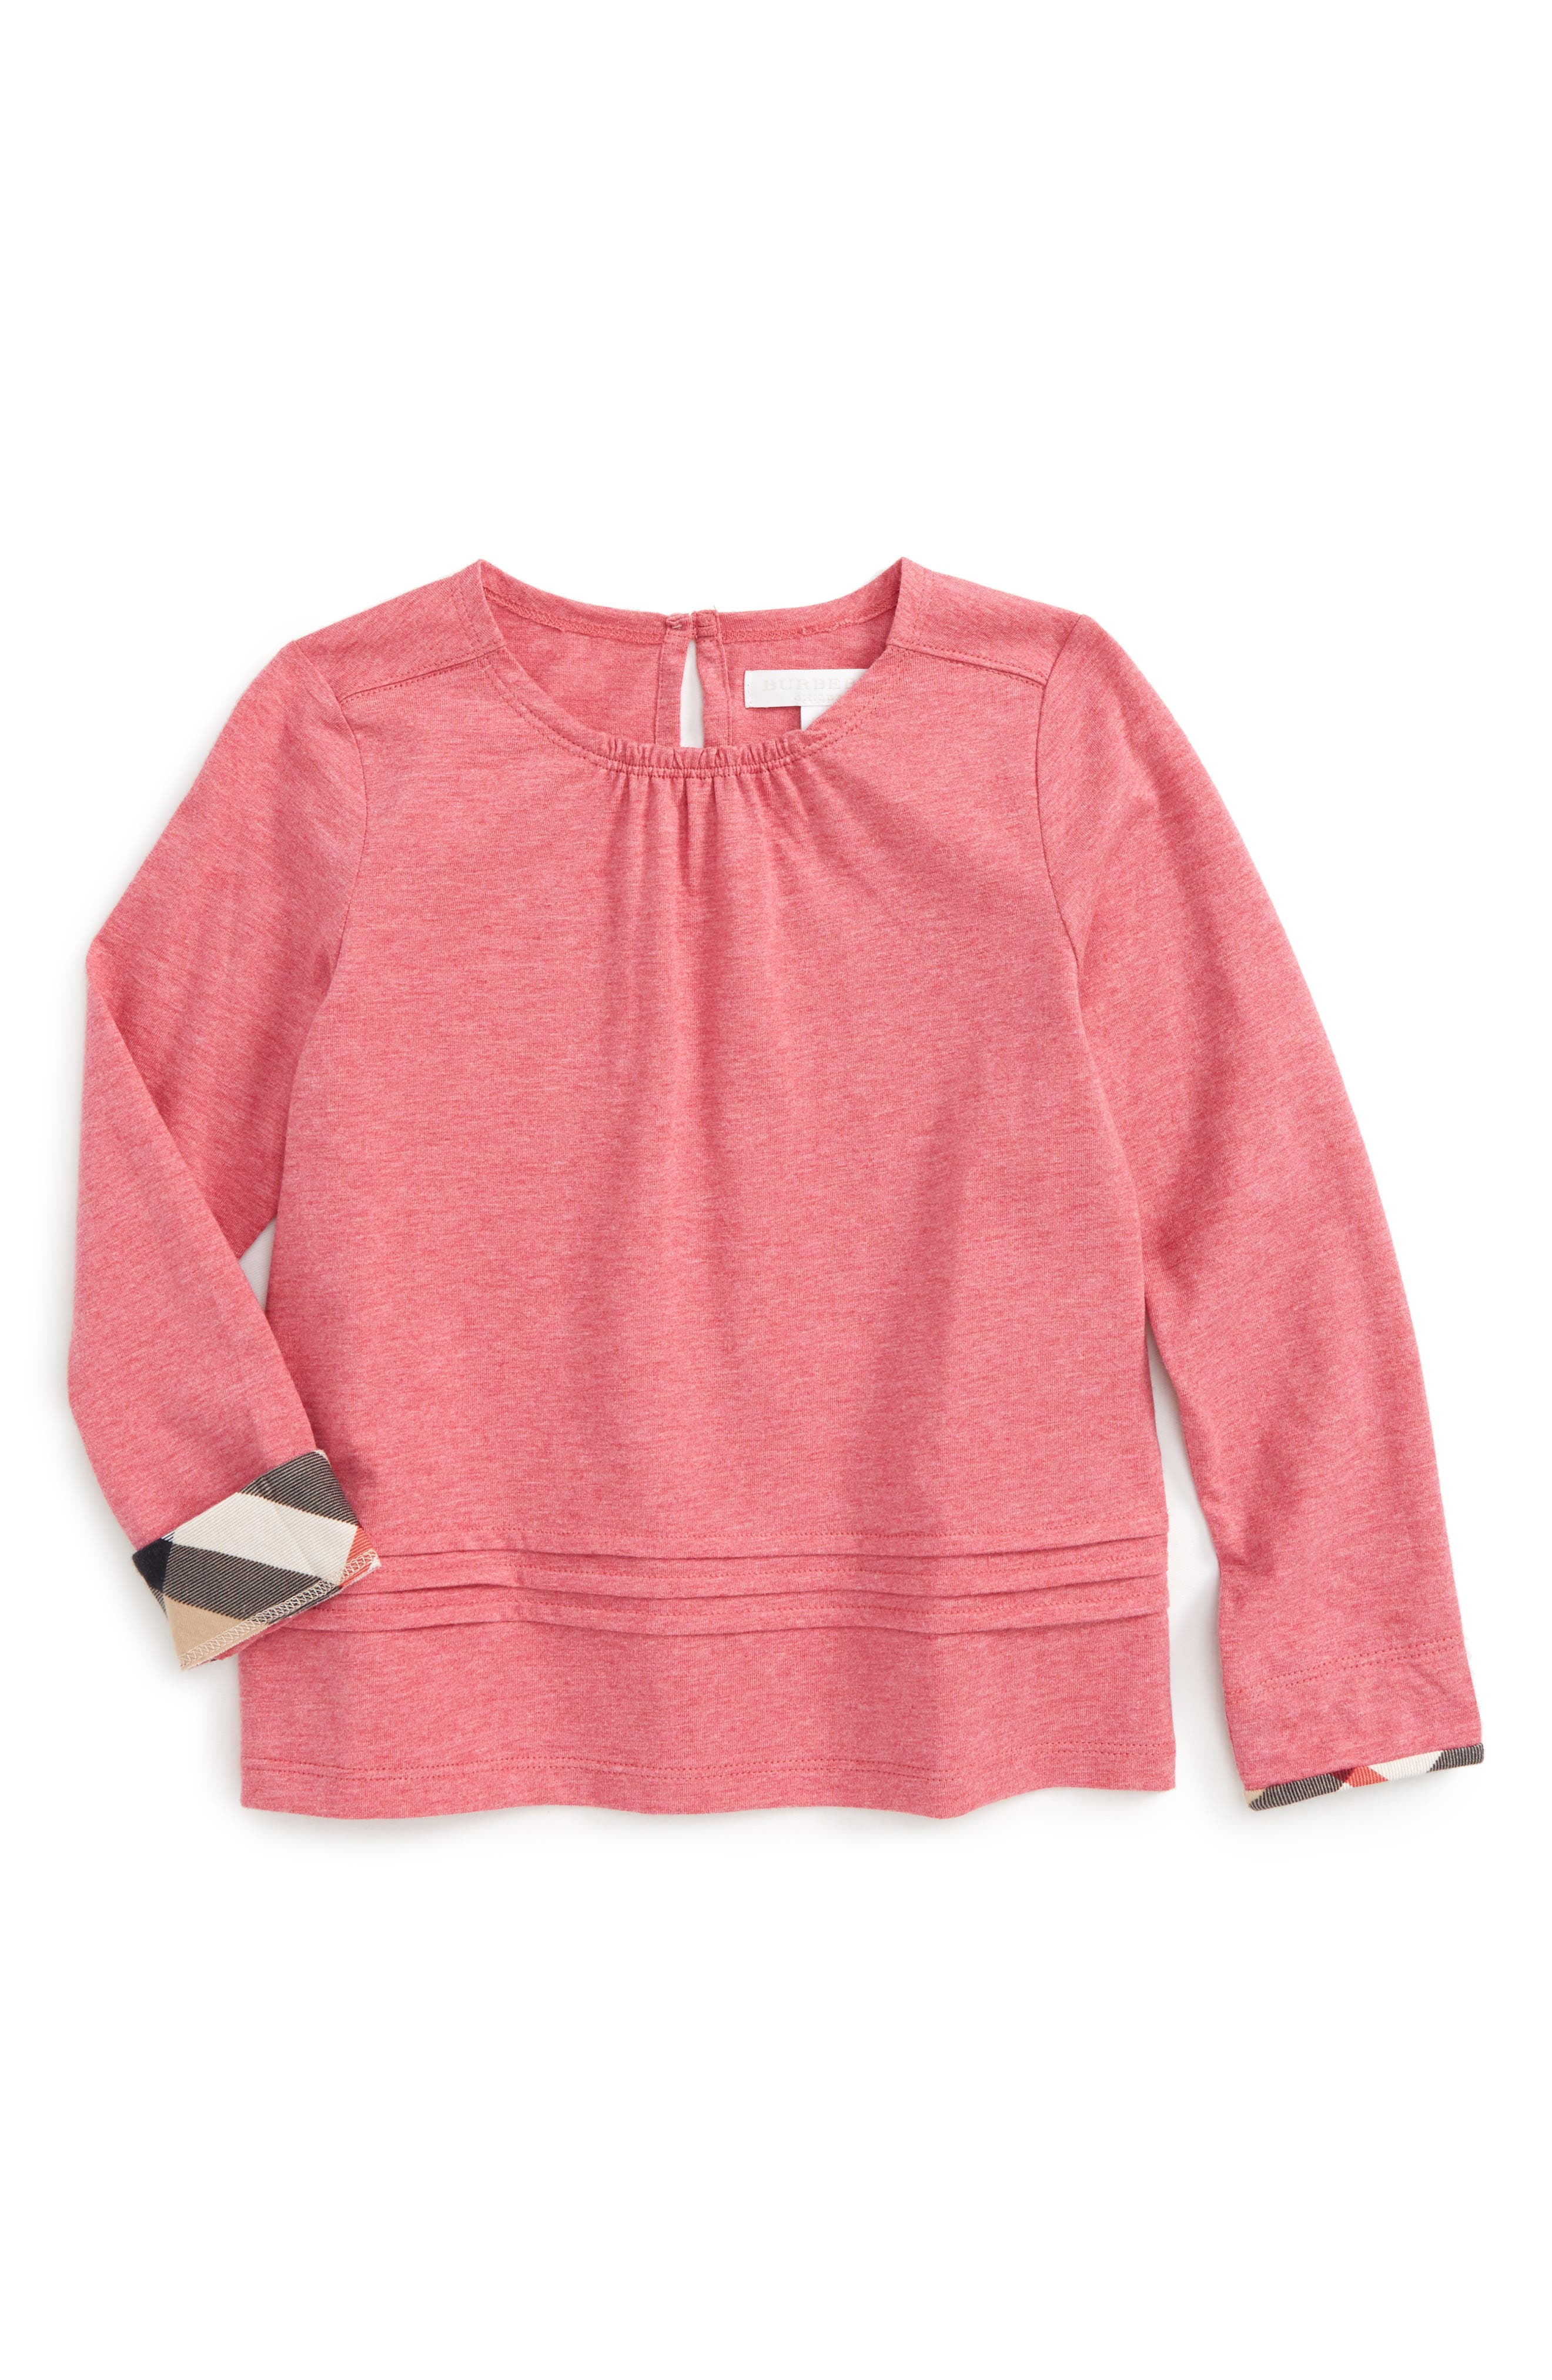 Main Image - Burberry Gisselle Cotton Top (Baby Girls)